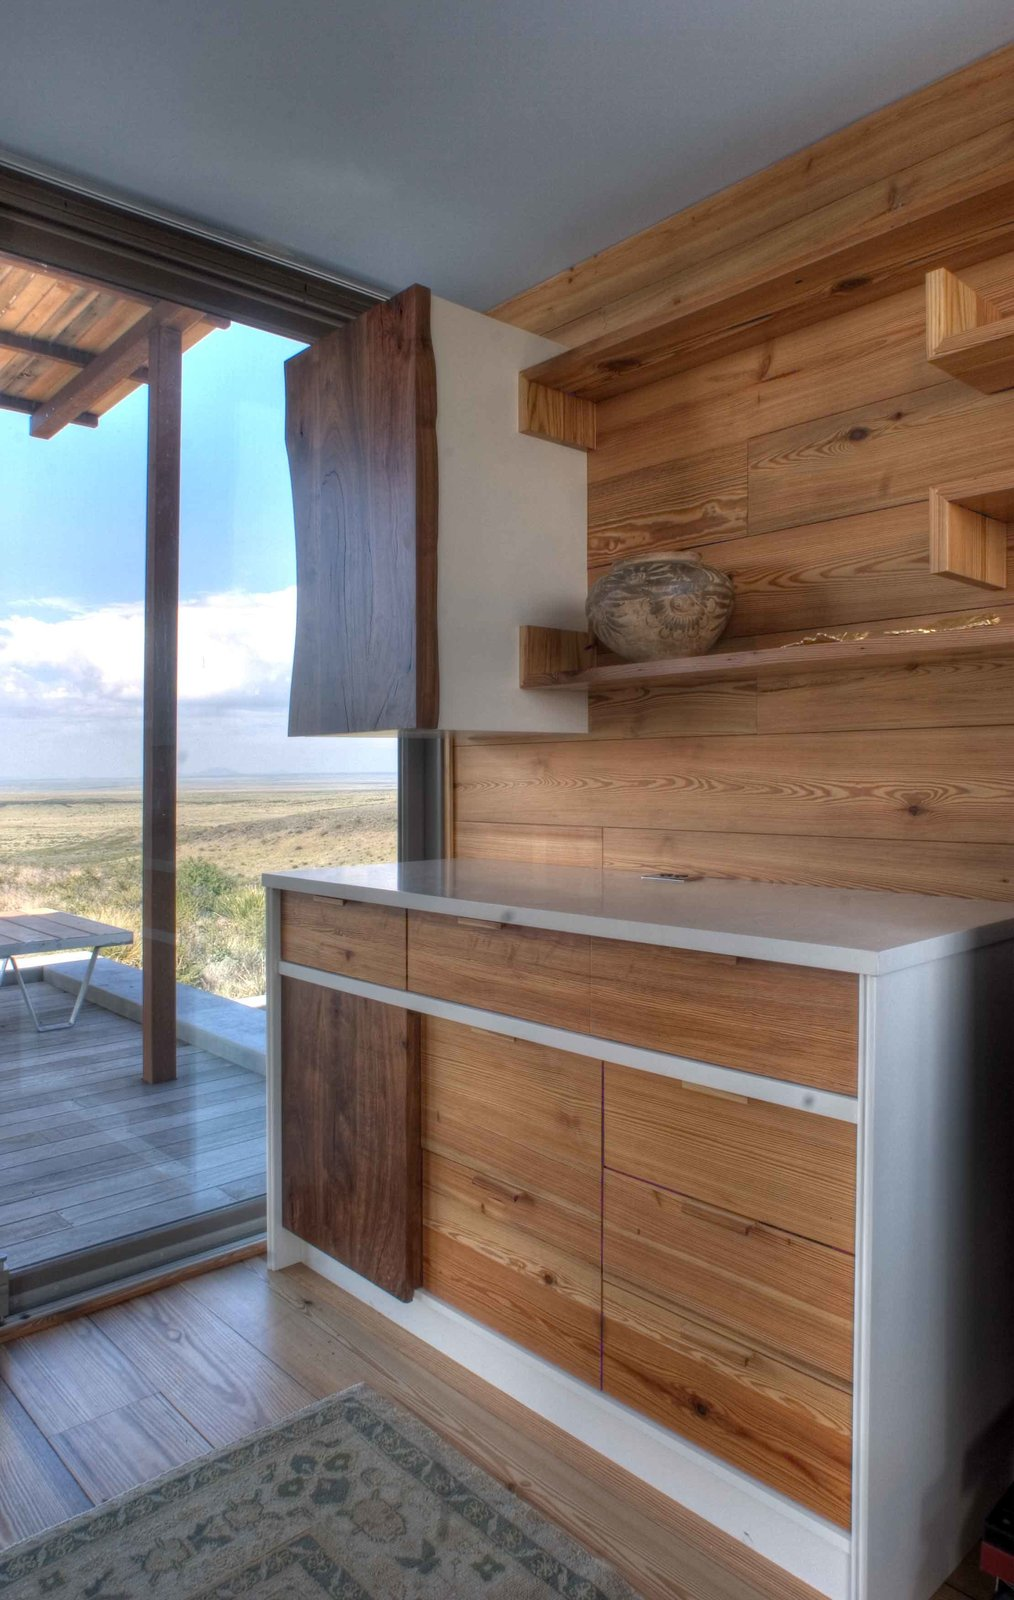 The kitchen cabinets are custom-made from salvaged cypress. Tagged: Storage Room, Shelves Storage Type, and Cabinet Storage Type.  Kitchens with Killer Views by Andrea Smith